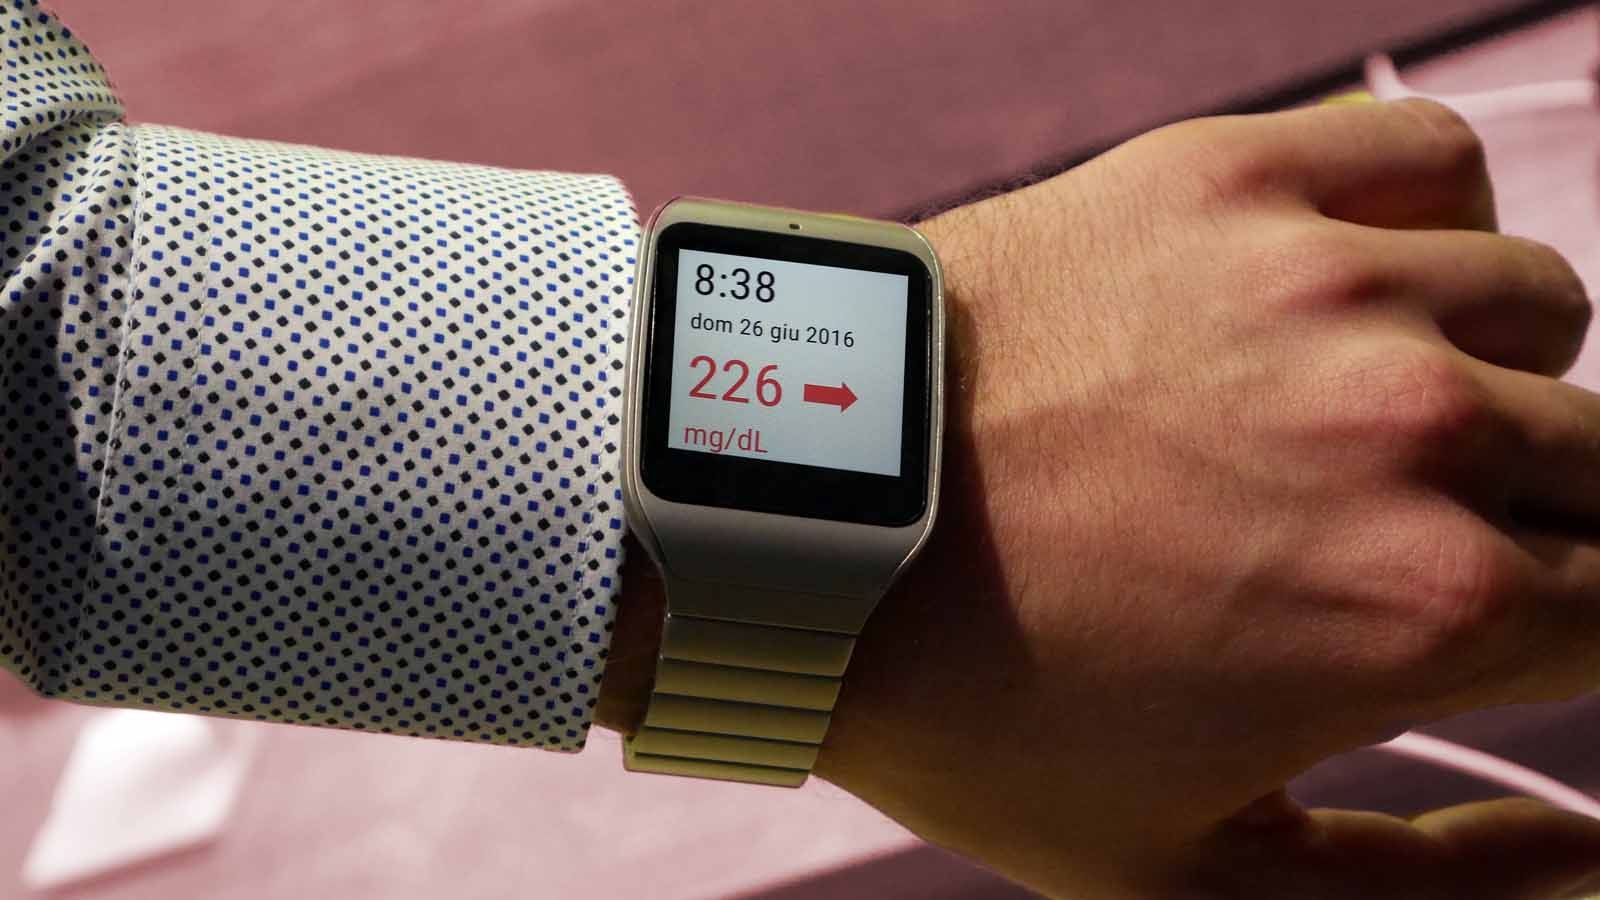 Leggere il FreeStyle Libre con lo smartwatch - DeeBee it